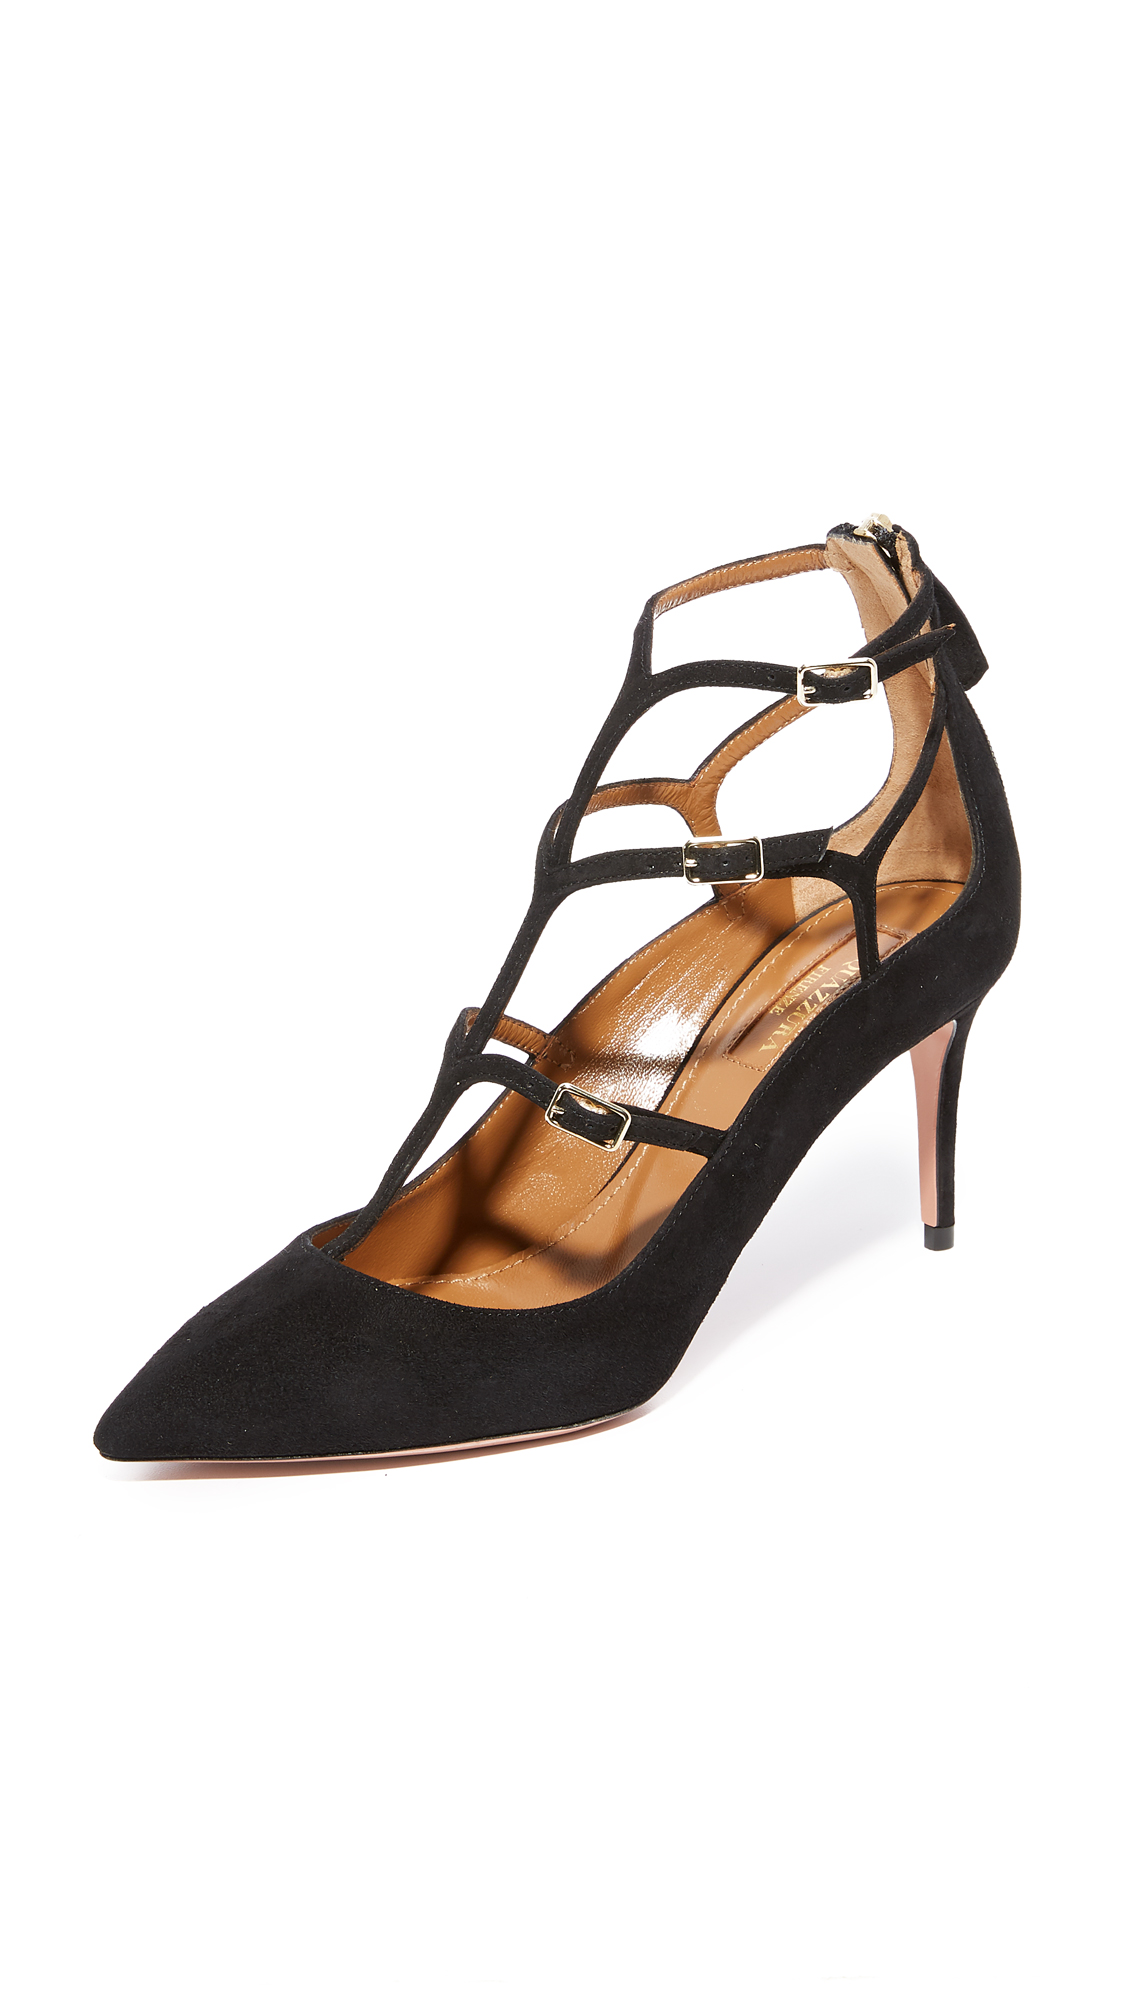 Aquazzura Eternity 75 Pumps - Black